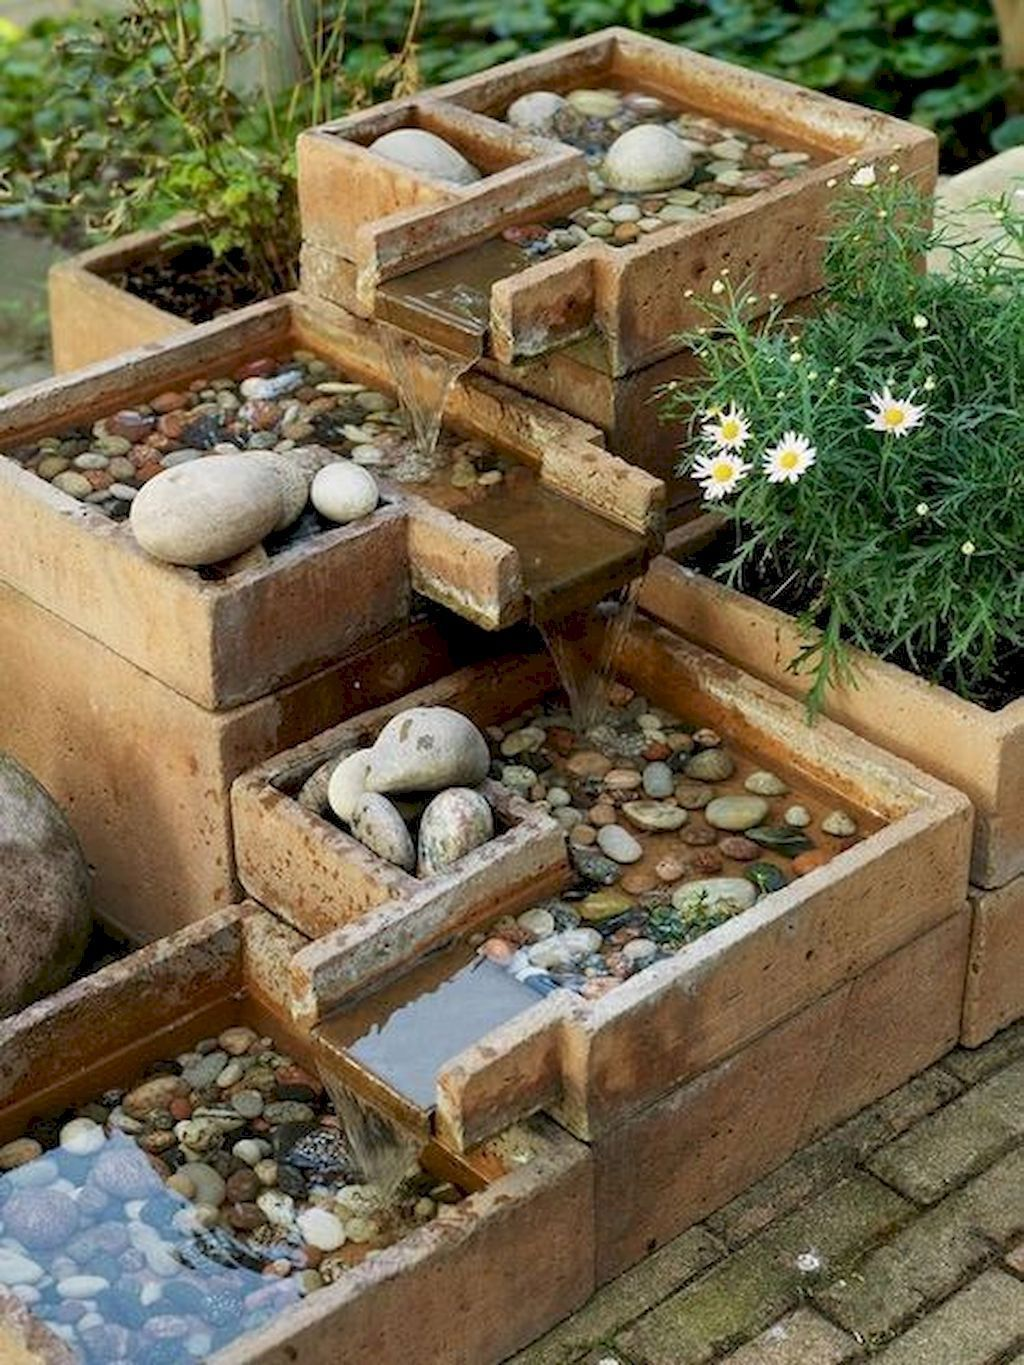 most creative garden design decor ideas - Creative Garden Ideas For Small Spaces